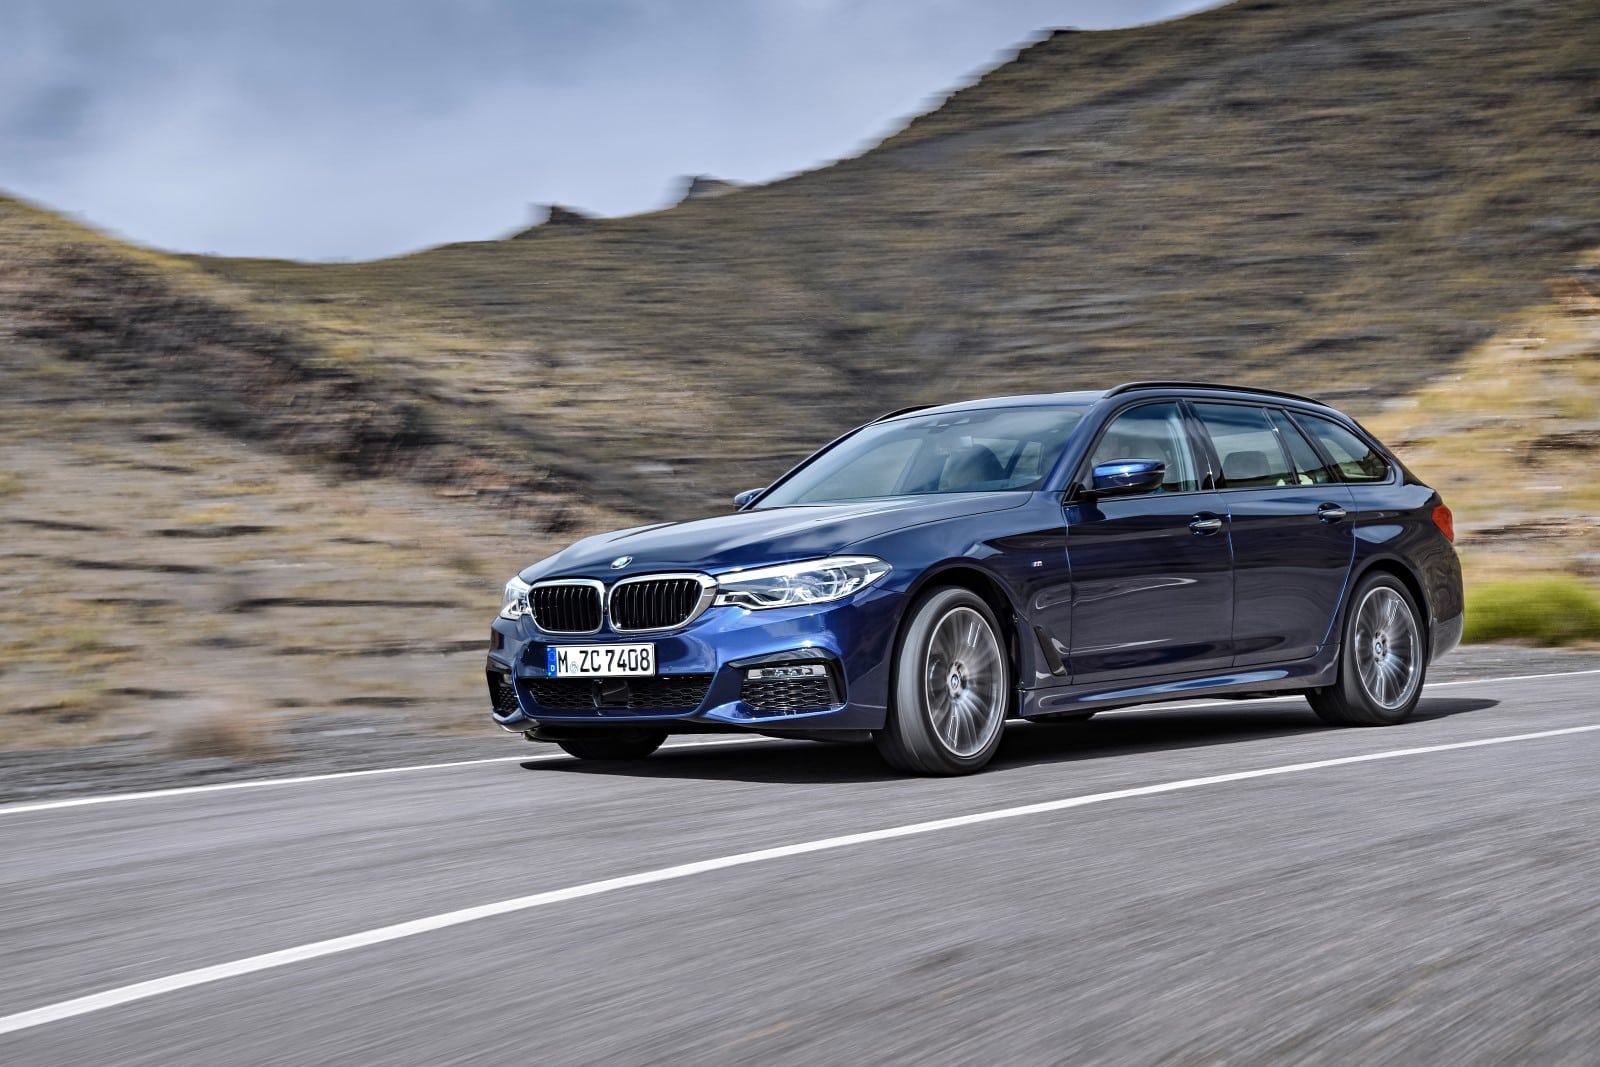 BMW 5 Series 530d xDrive G30 Touring Exterior